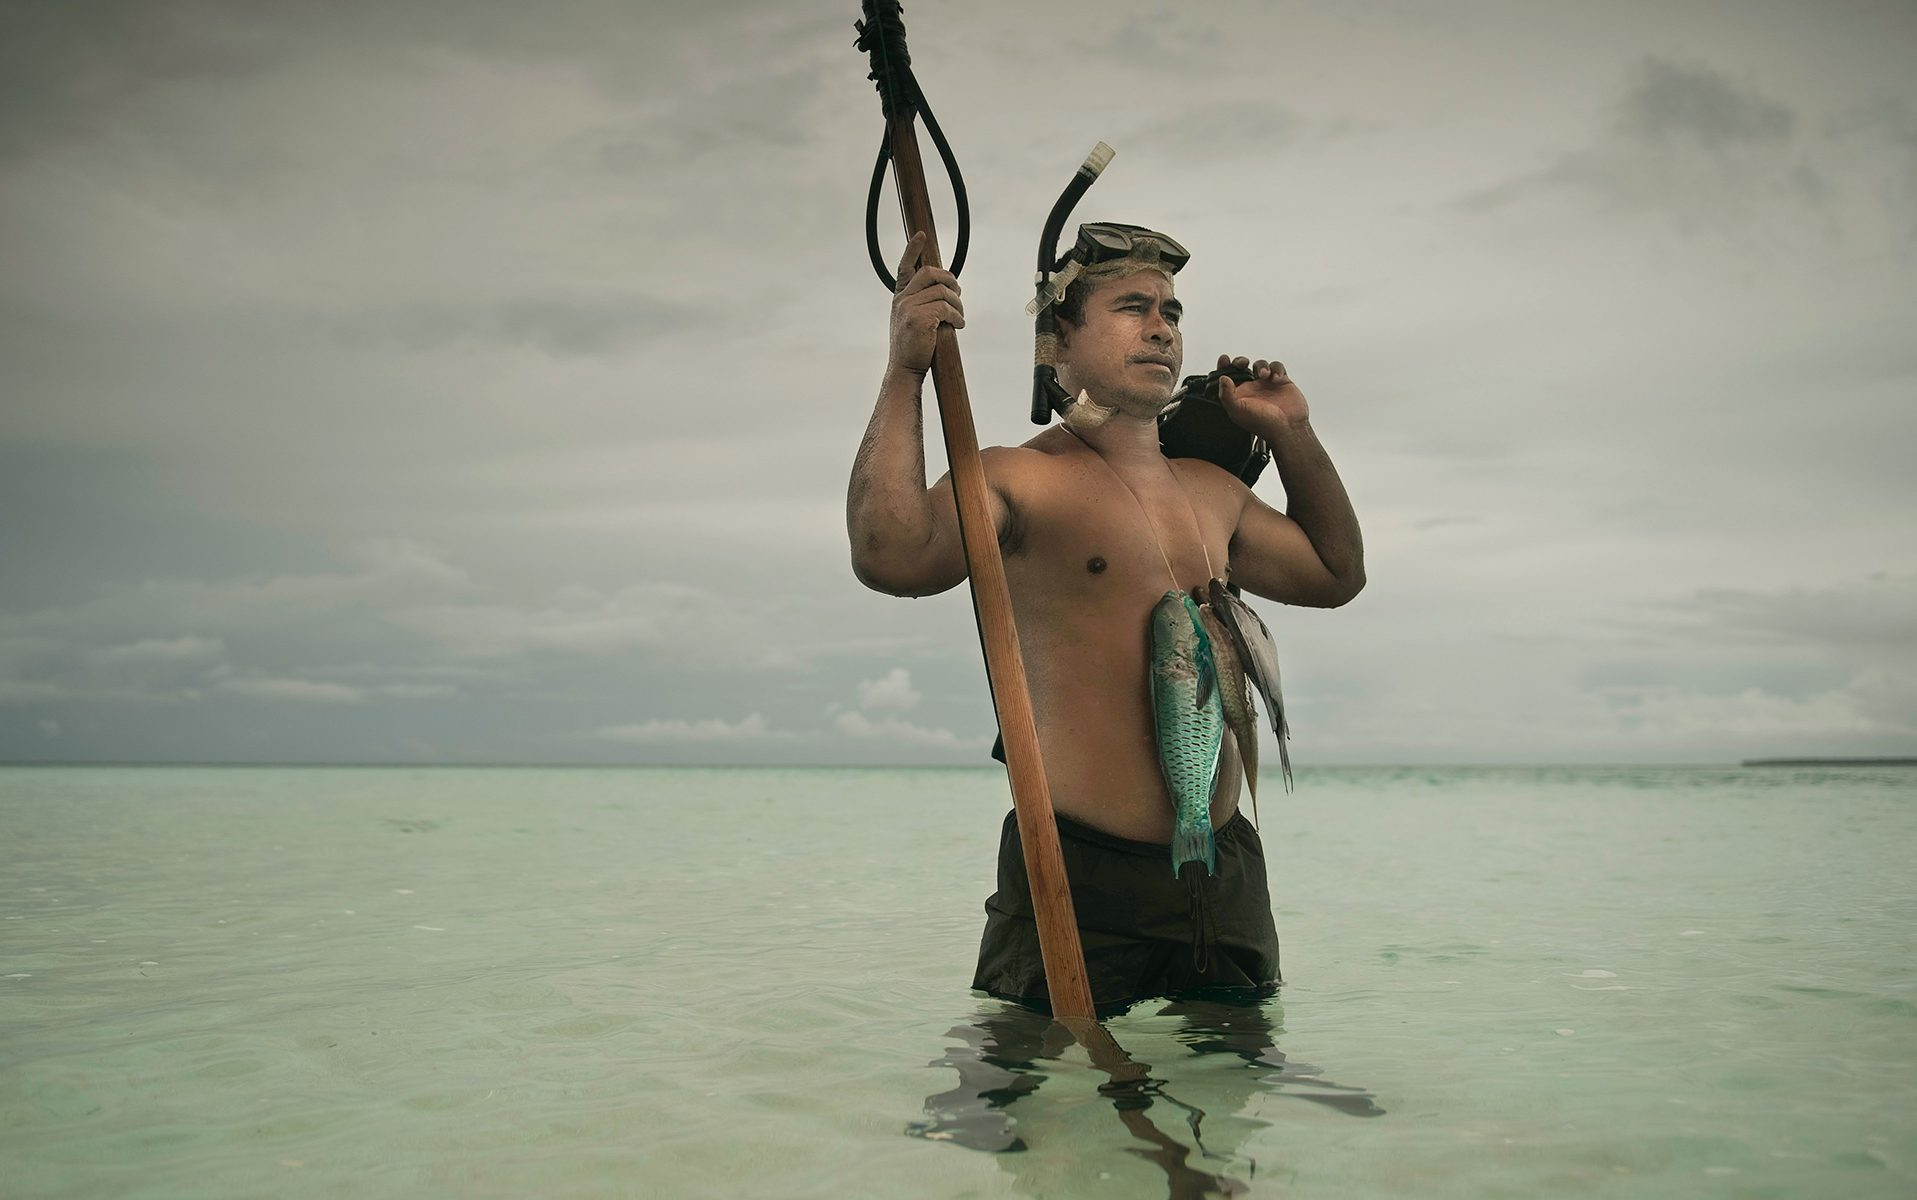 Man fishing with a snorkel and a spear.